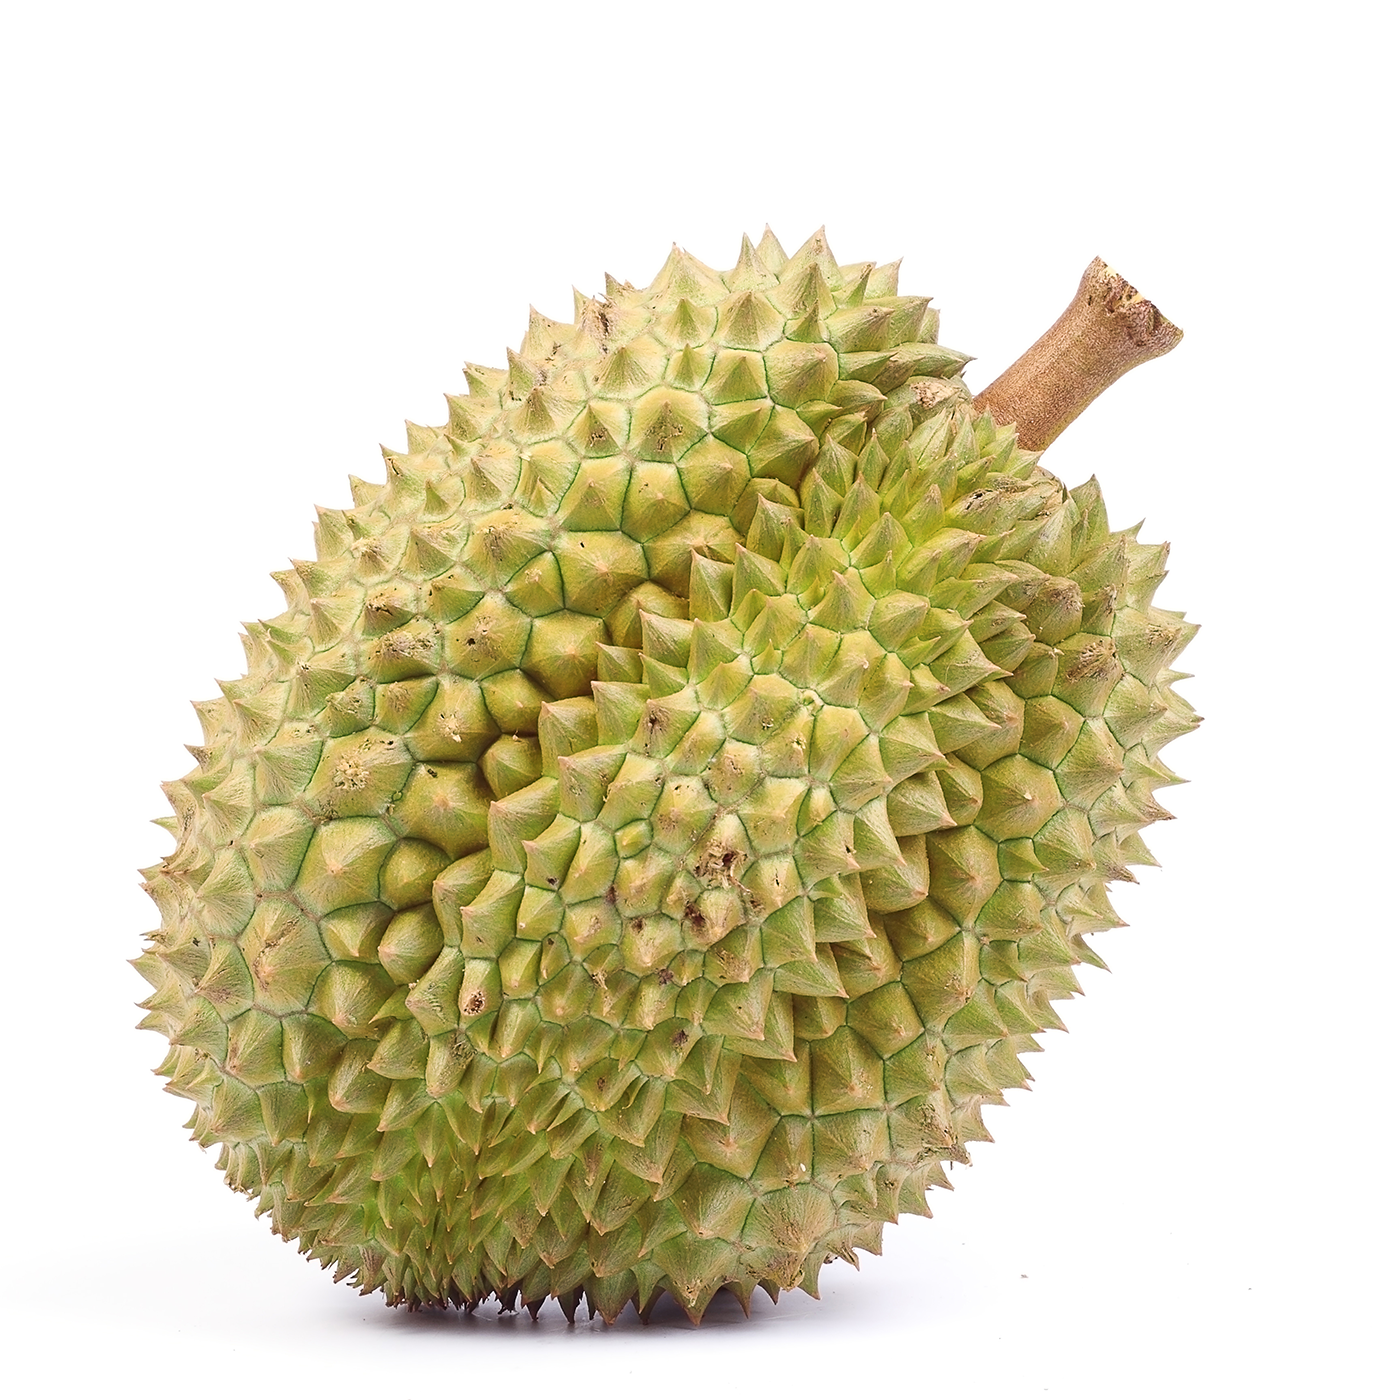 PNG Durian - 135713